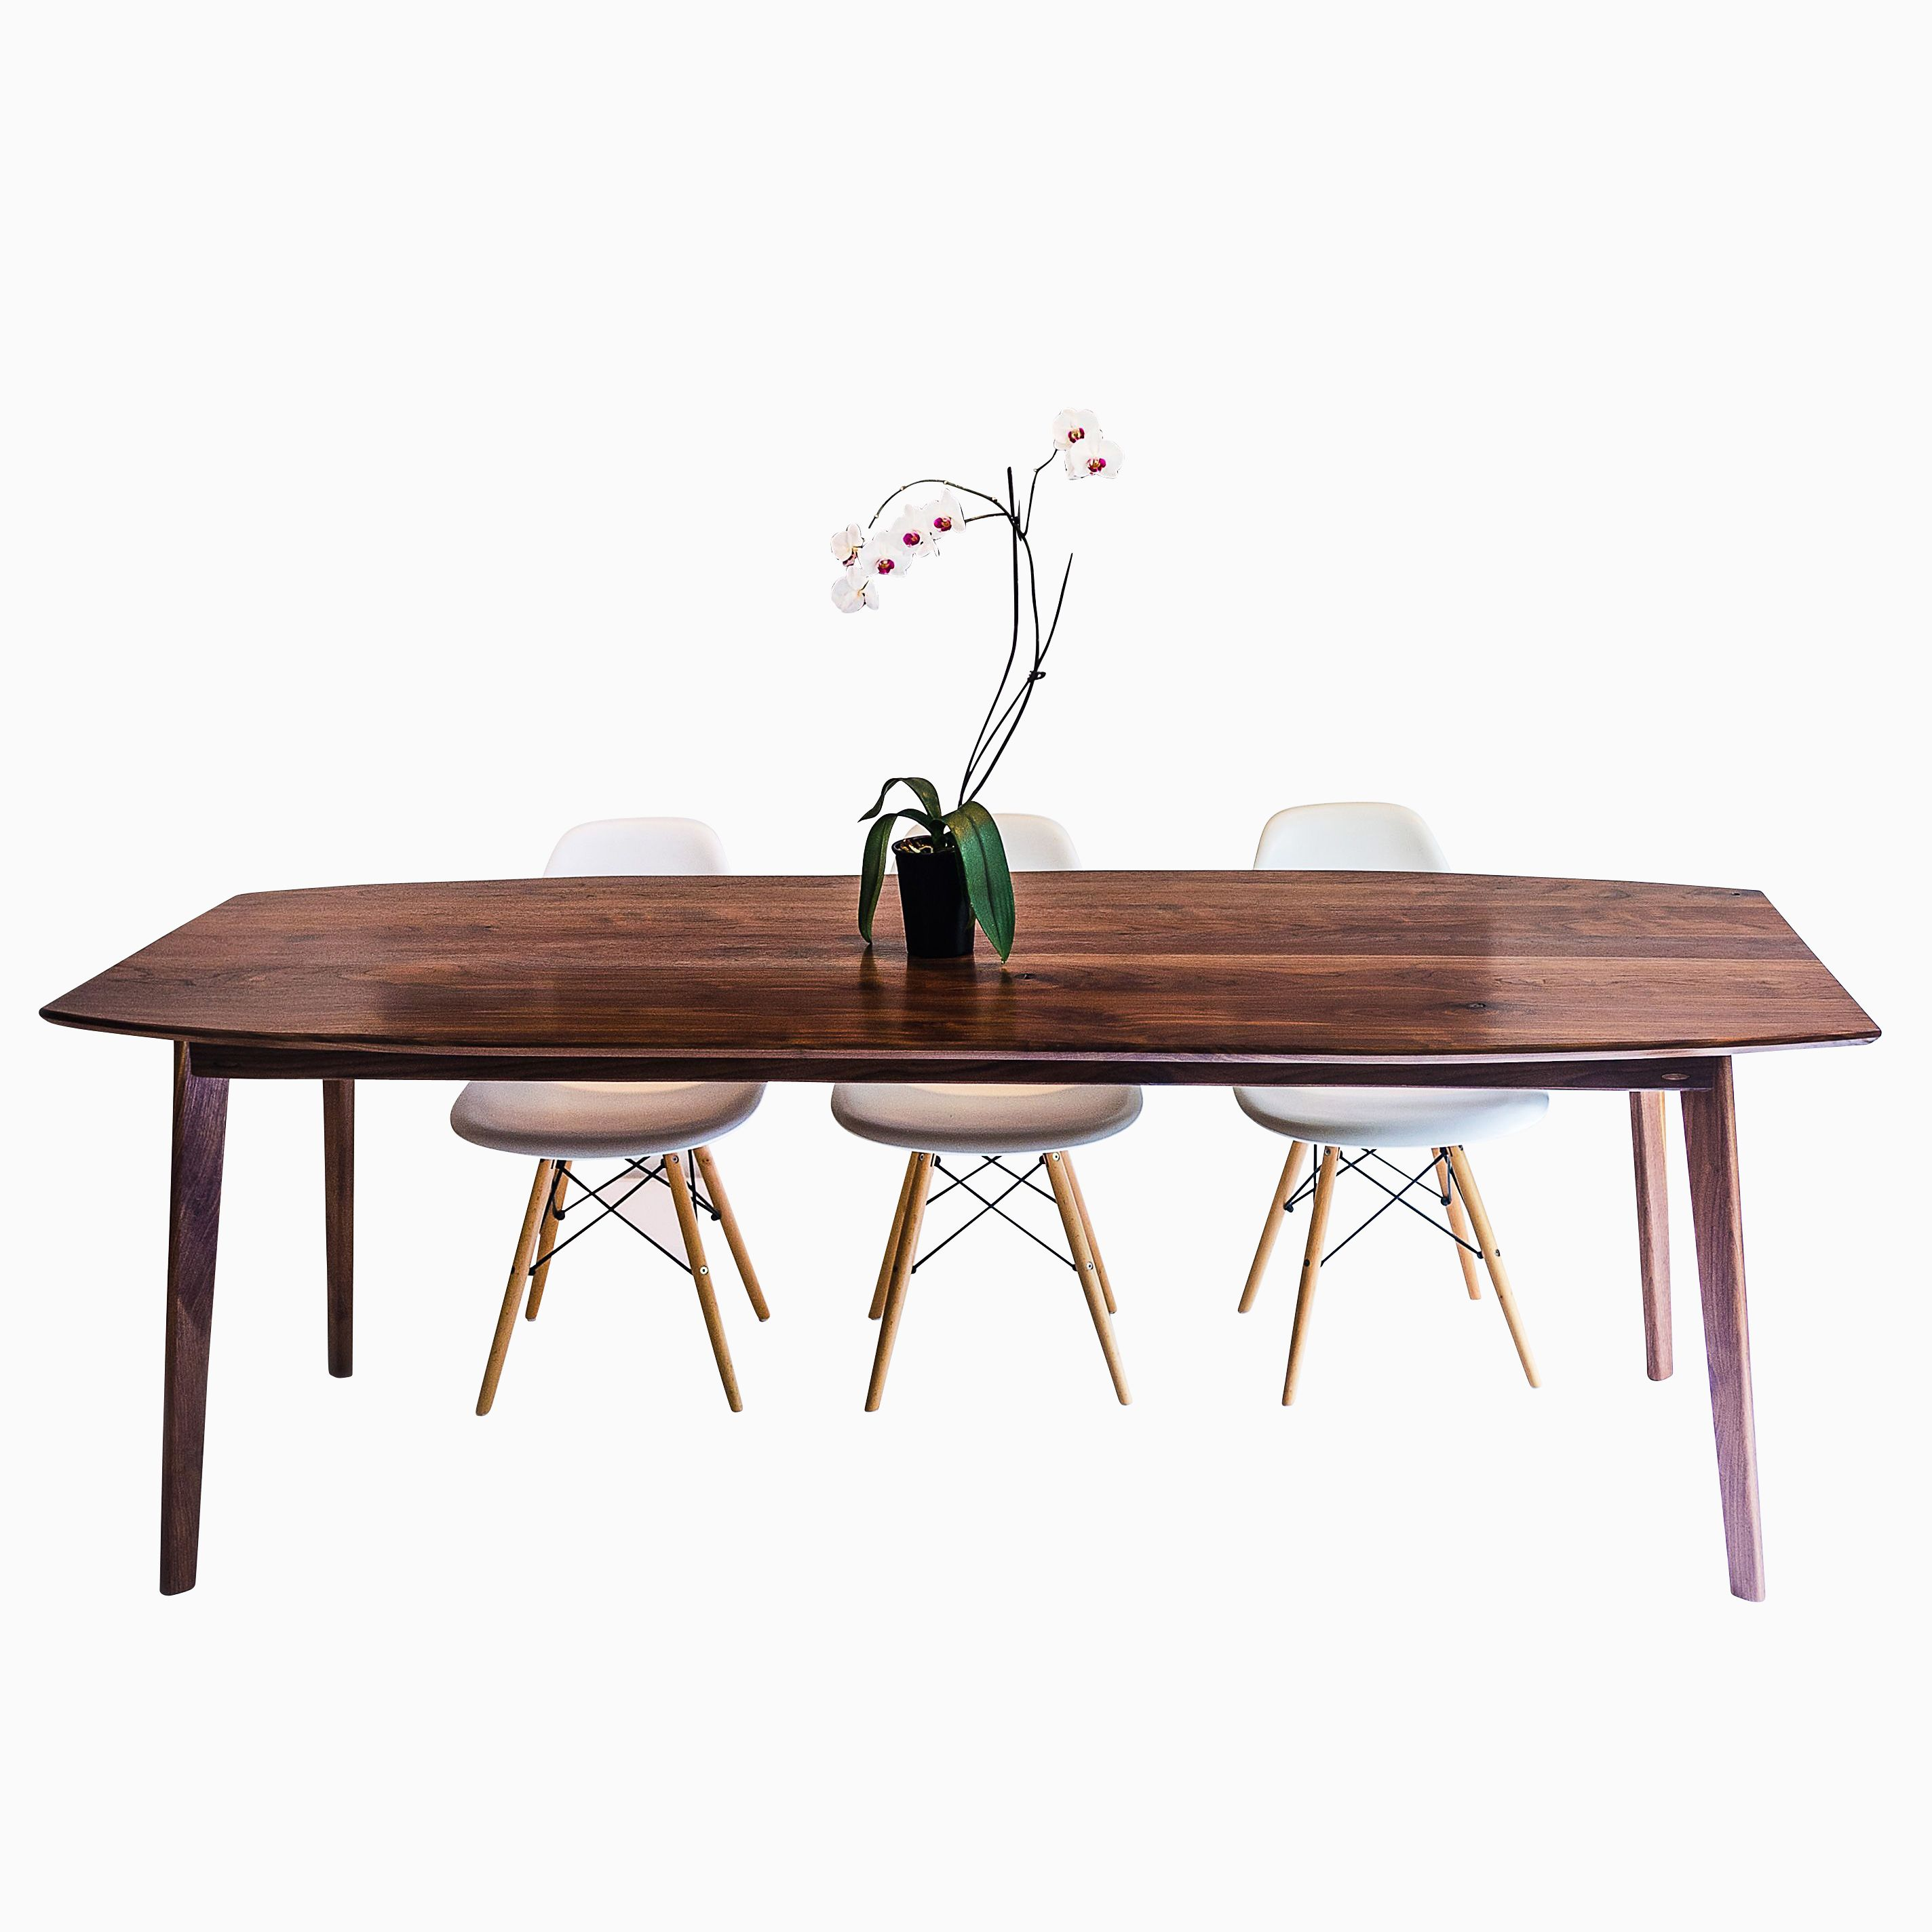 Walnut Kitchen Table: Buy A Custom The Santa Monica: Solid Black Walnut Dining